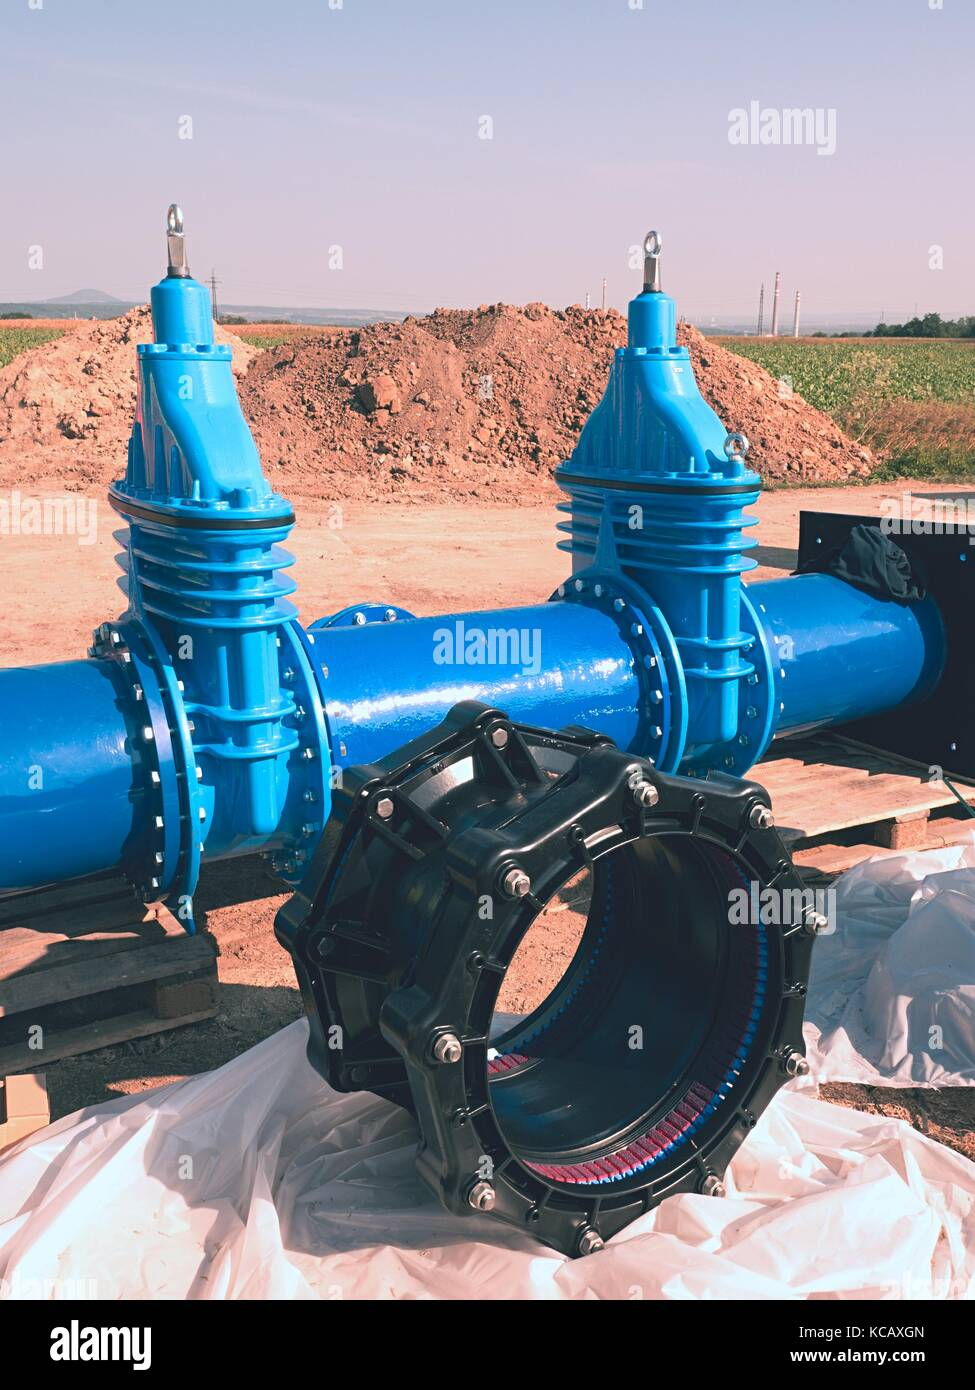 500mm new black waga multi joint members. Repairing process to connect drink water supply. New spare parts for repairing - Stock Image